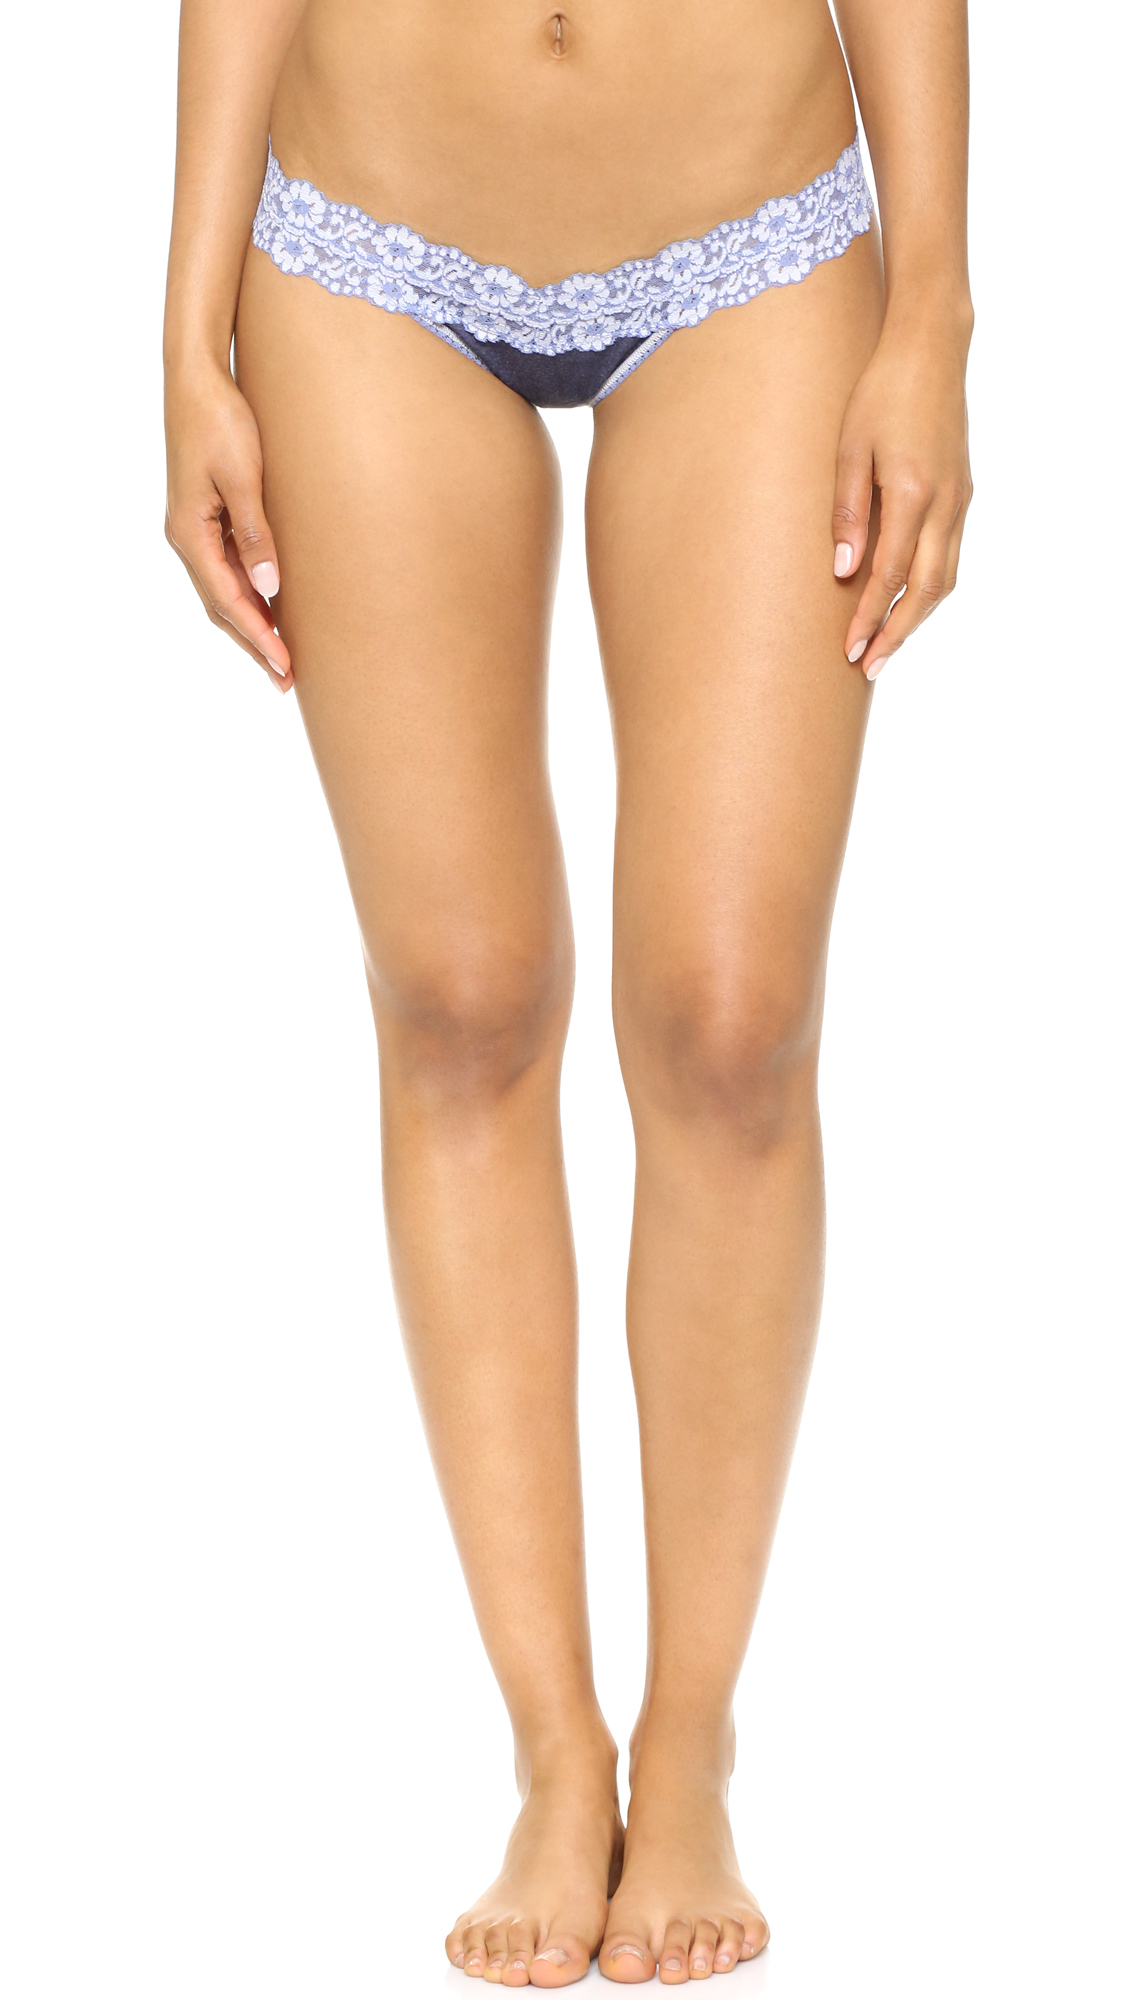 Hanky Panky Heather Jersey Low Rise Thong - Chambray/White at Shopbop